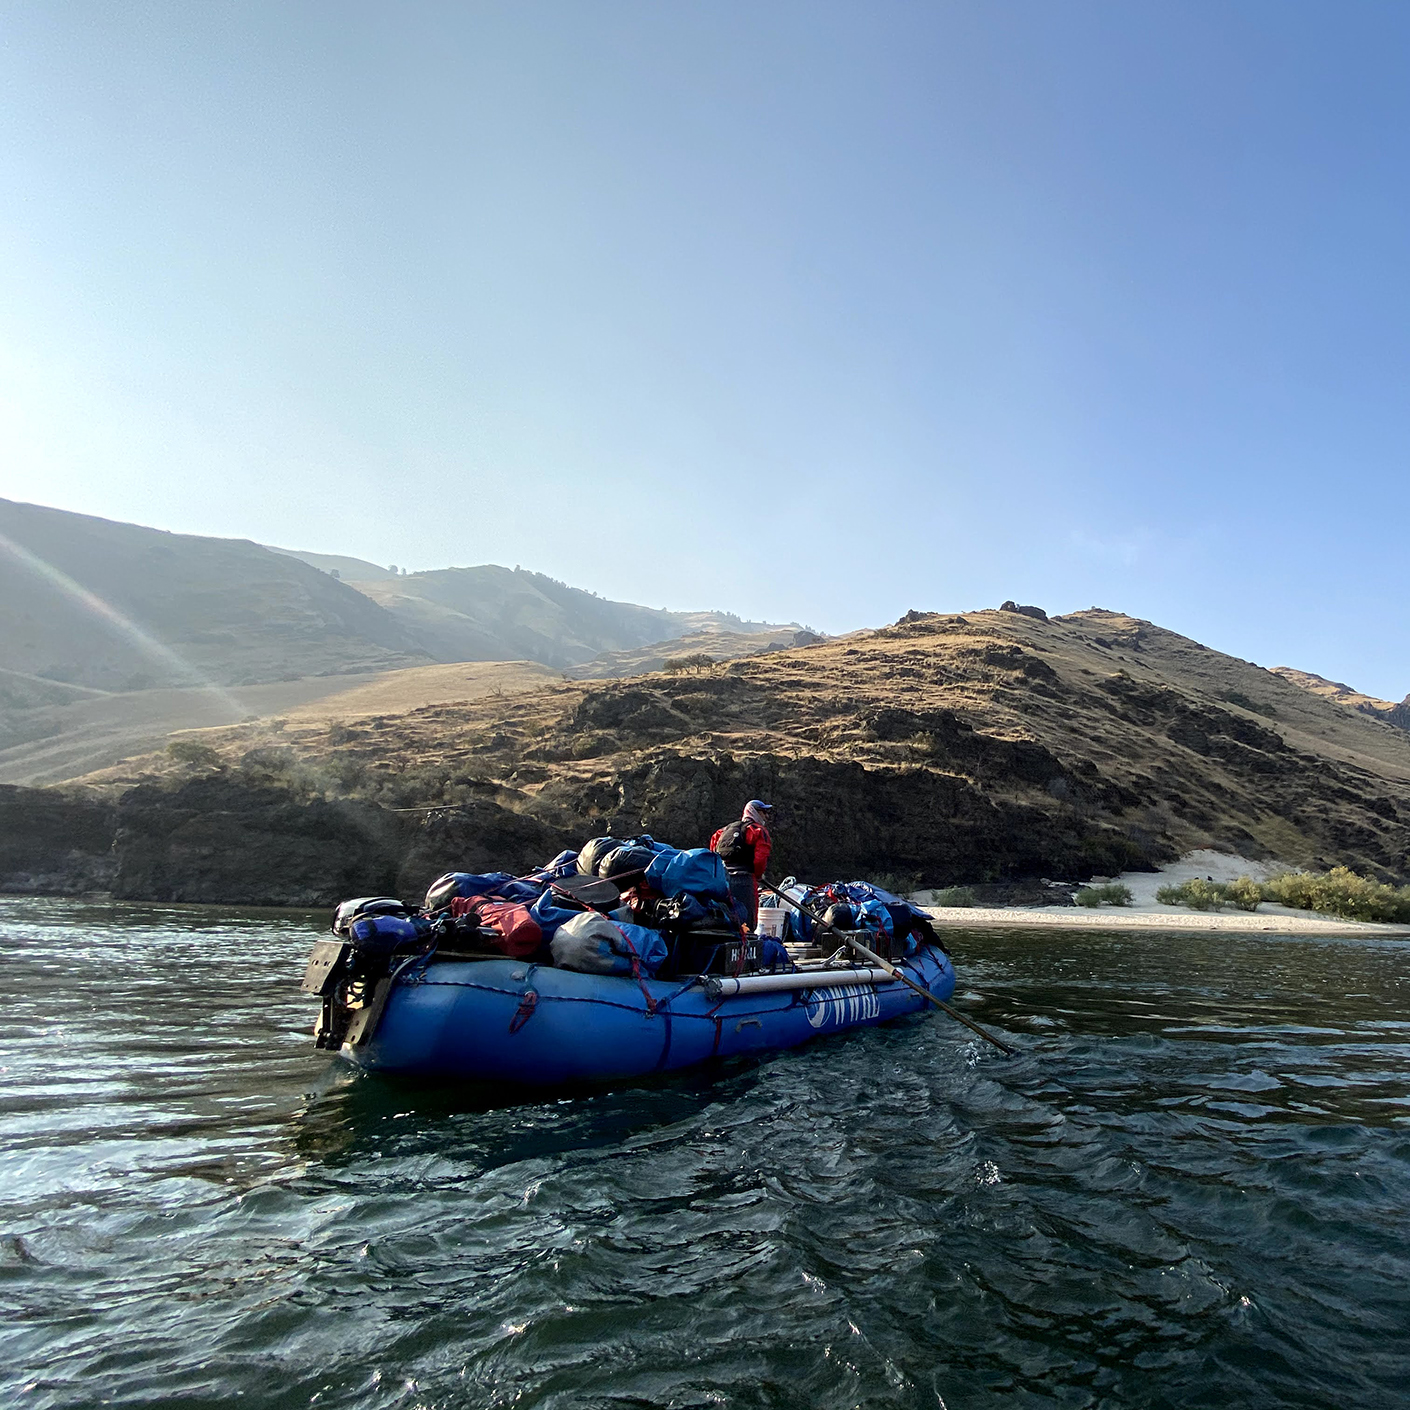 Whitewater rafting guide with loaded boat